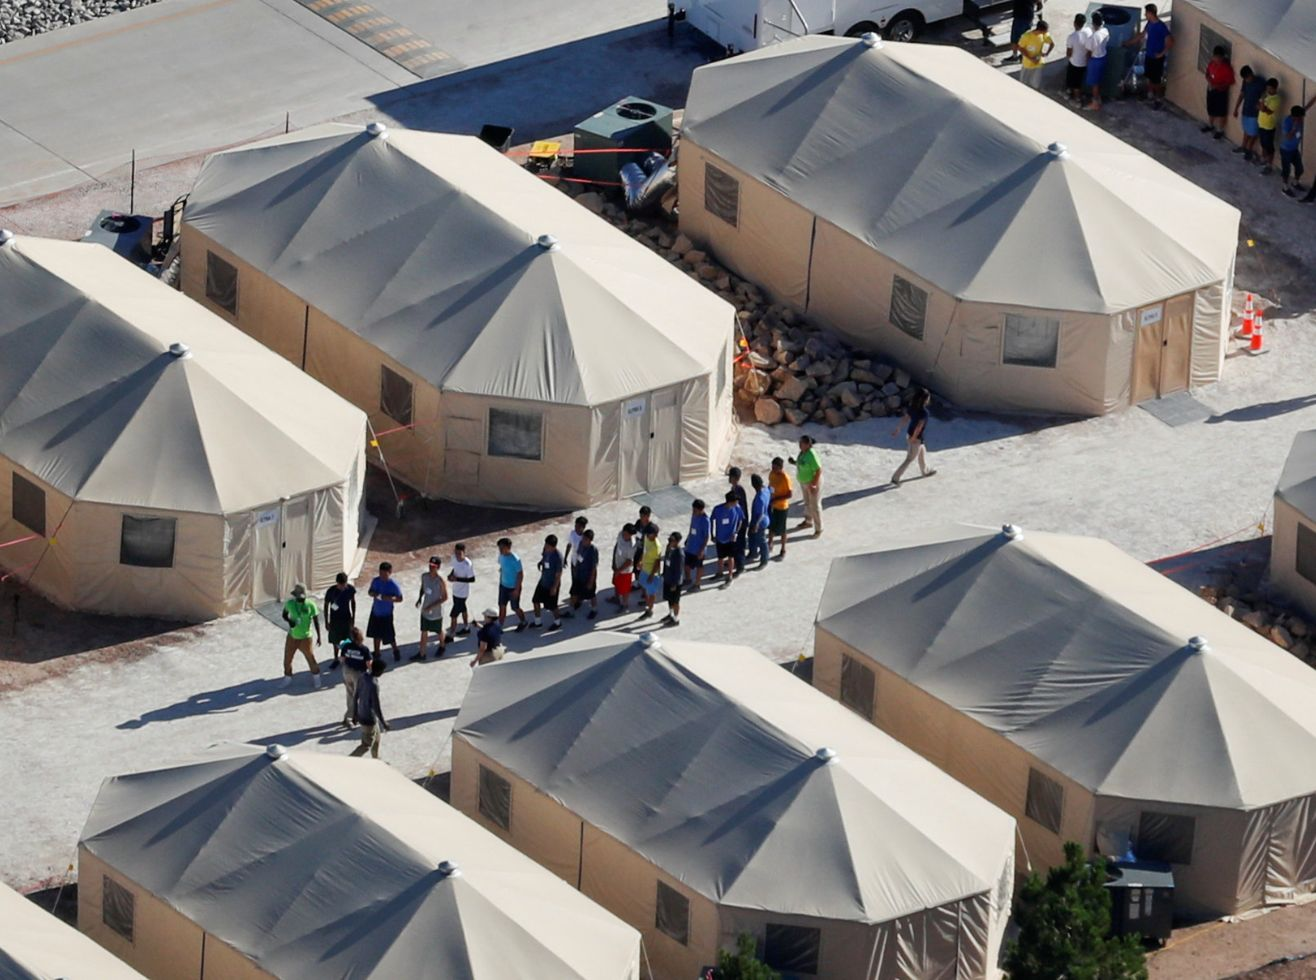 Immigrant children now housed in a tent encampment under the new 'zero tolerance' policy by the Trump...